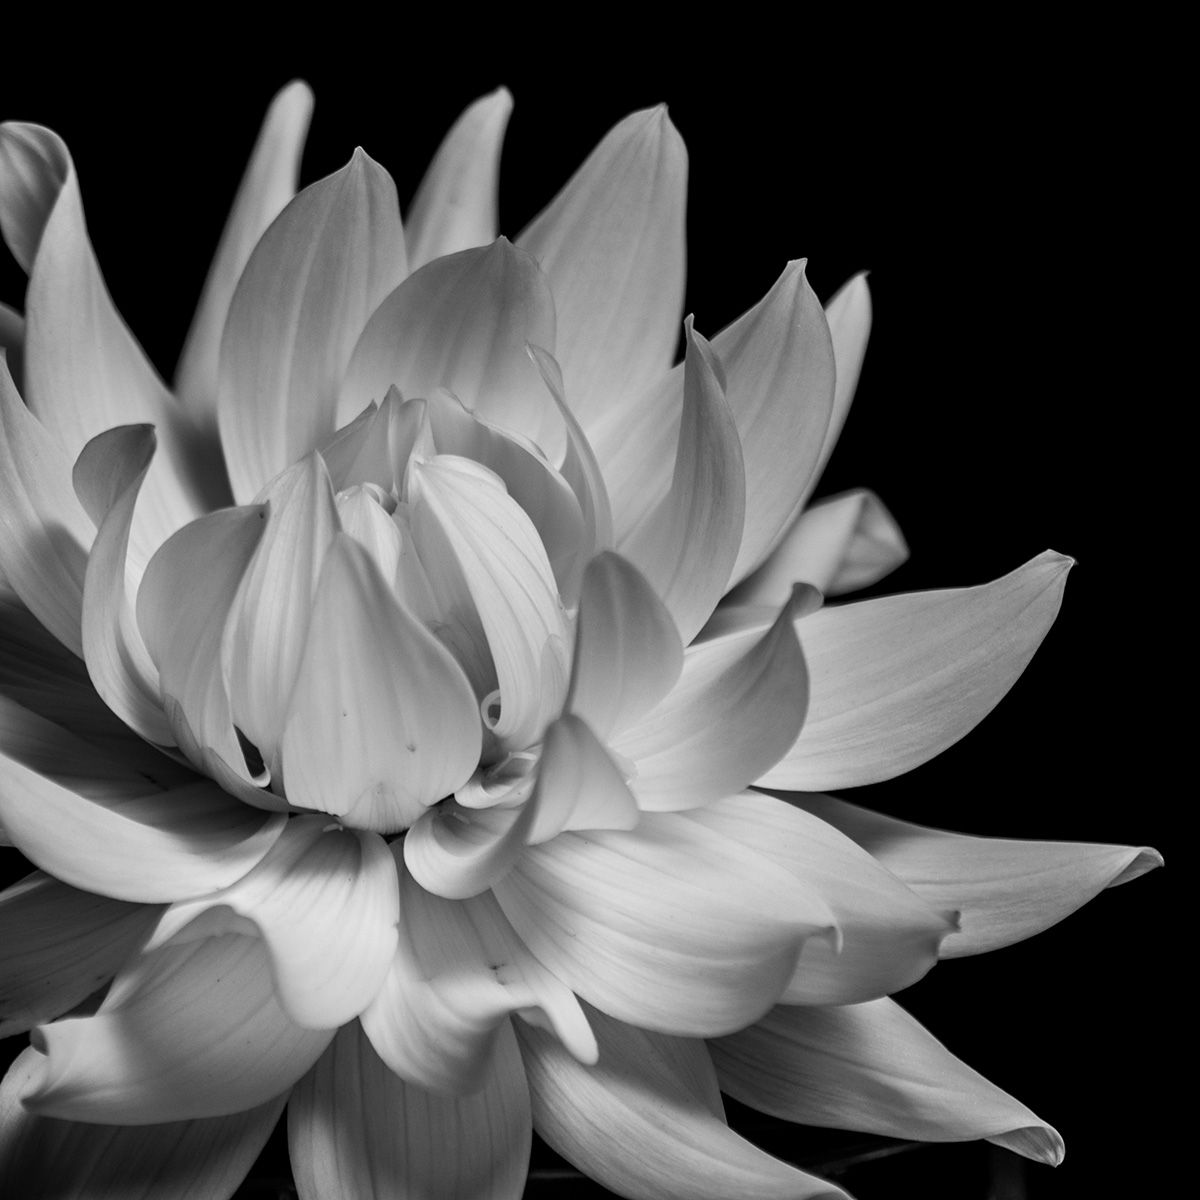 Flower - Black and White - Photo: Tim Münnig